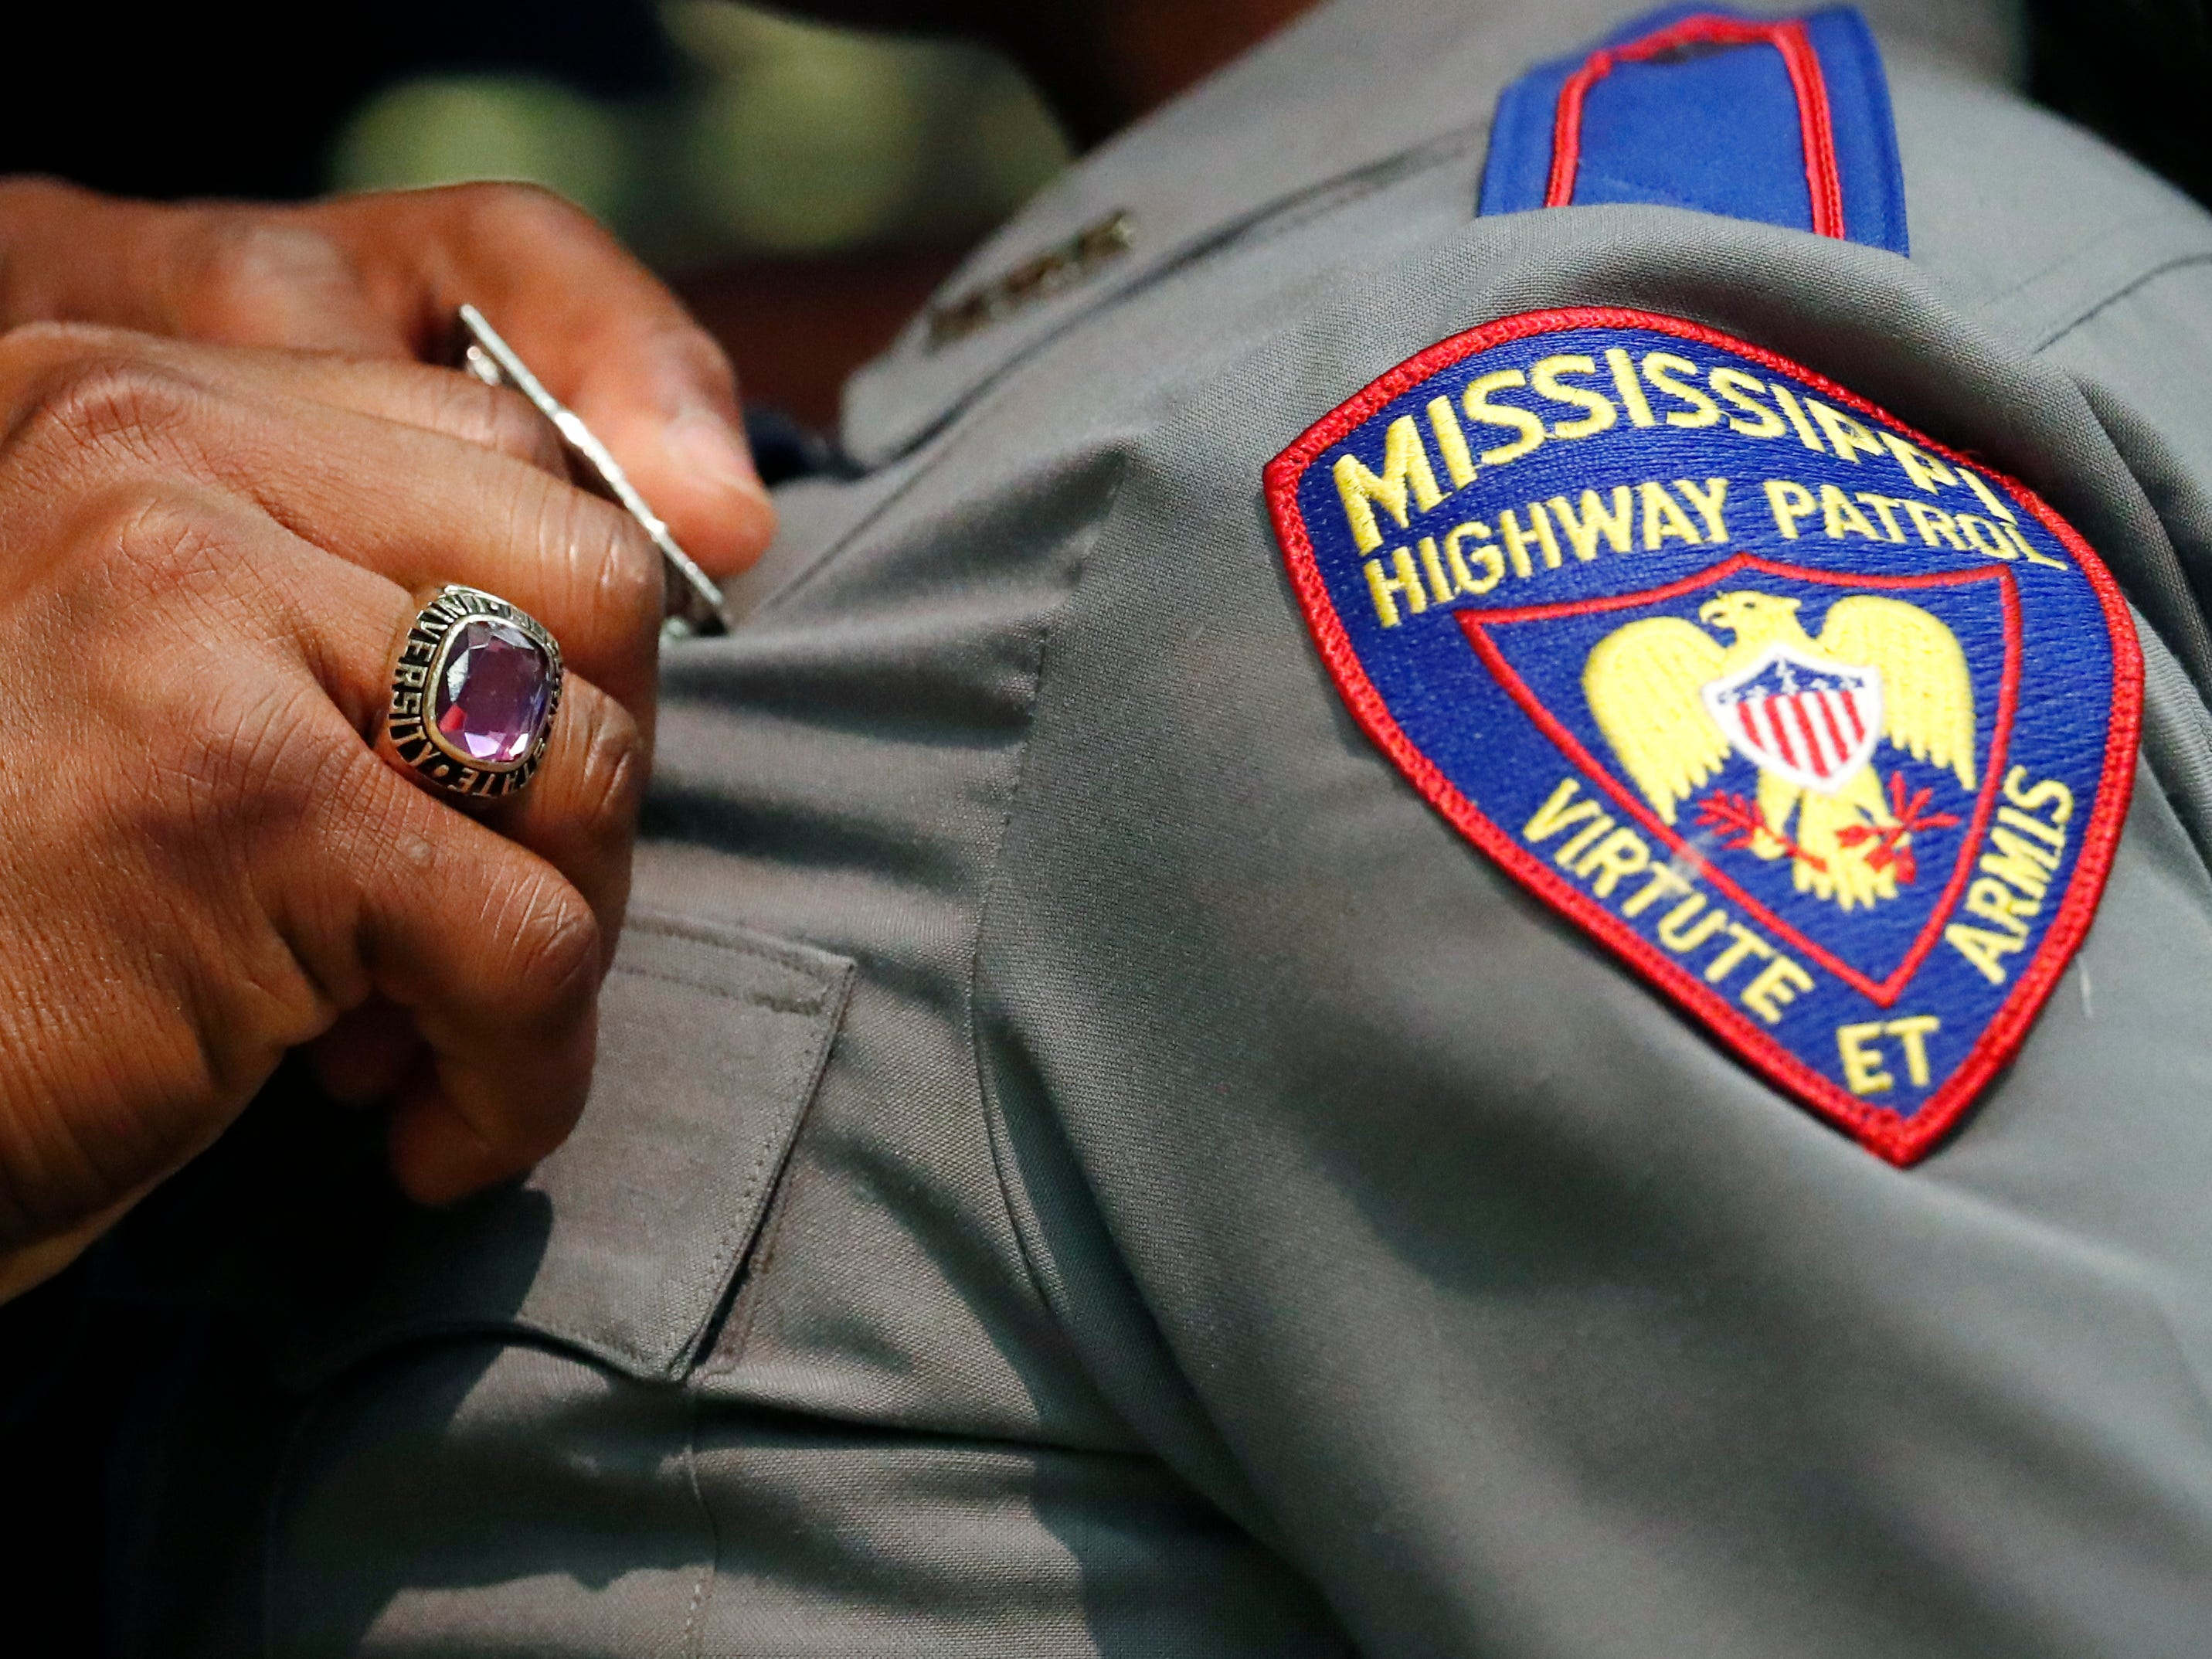 Mississippi Highway Patrol director Col. Chris Gillard, left, pins the badge on the shirt of one of the 44 cadets sworn in as the newest Mississippi Highway Patrol troopers, Wednesday, May 1, 2019, at the Clyde Muse Center in Pearl, Miss.